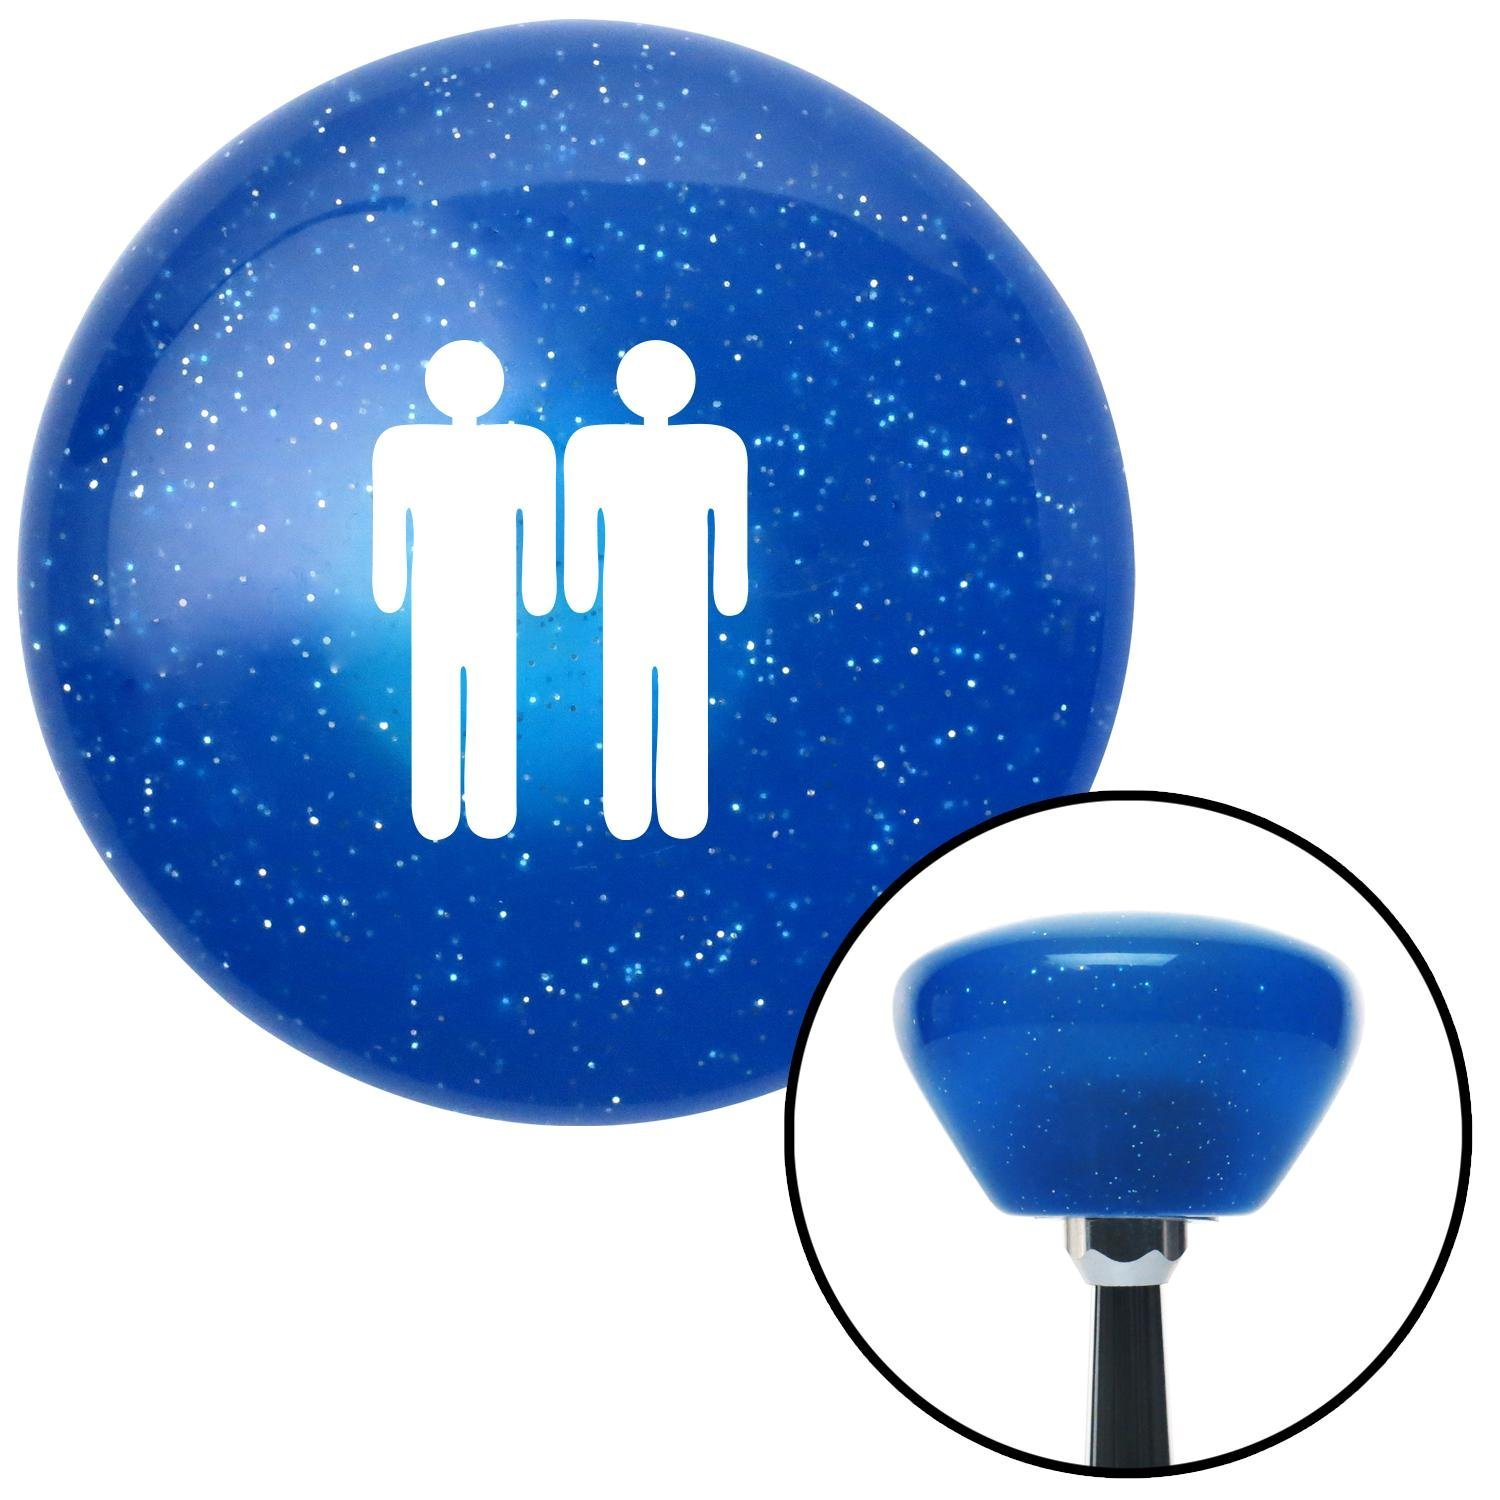 American Shifter 187196 Blue Retro Metal Flake Shift Knob with M16 x 1.5 Insert White Man Standing by Man